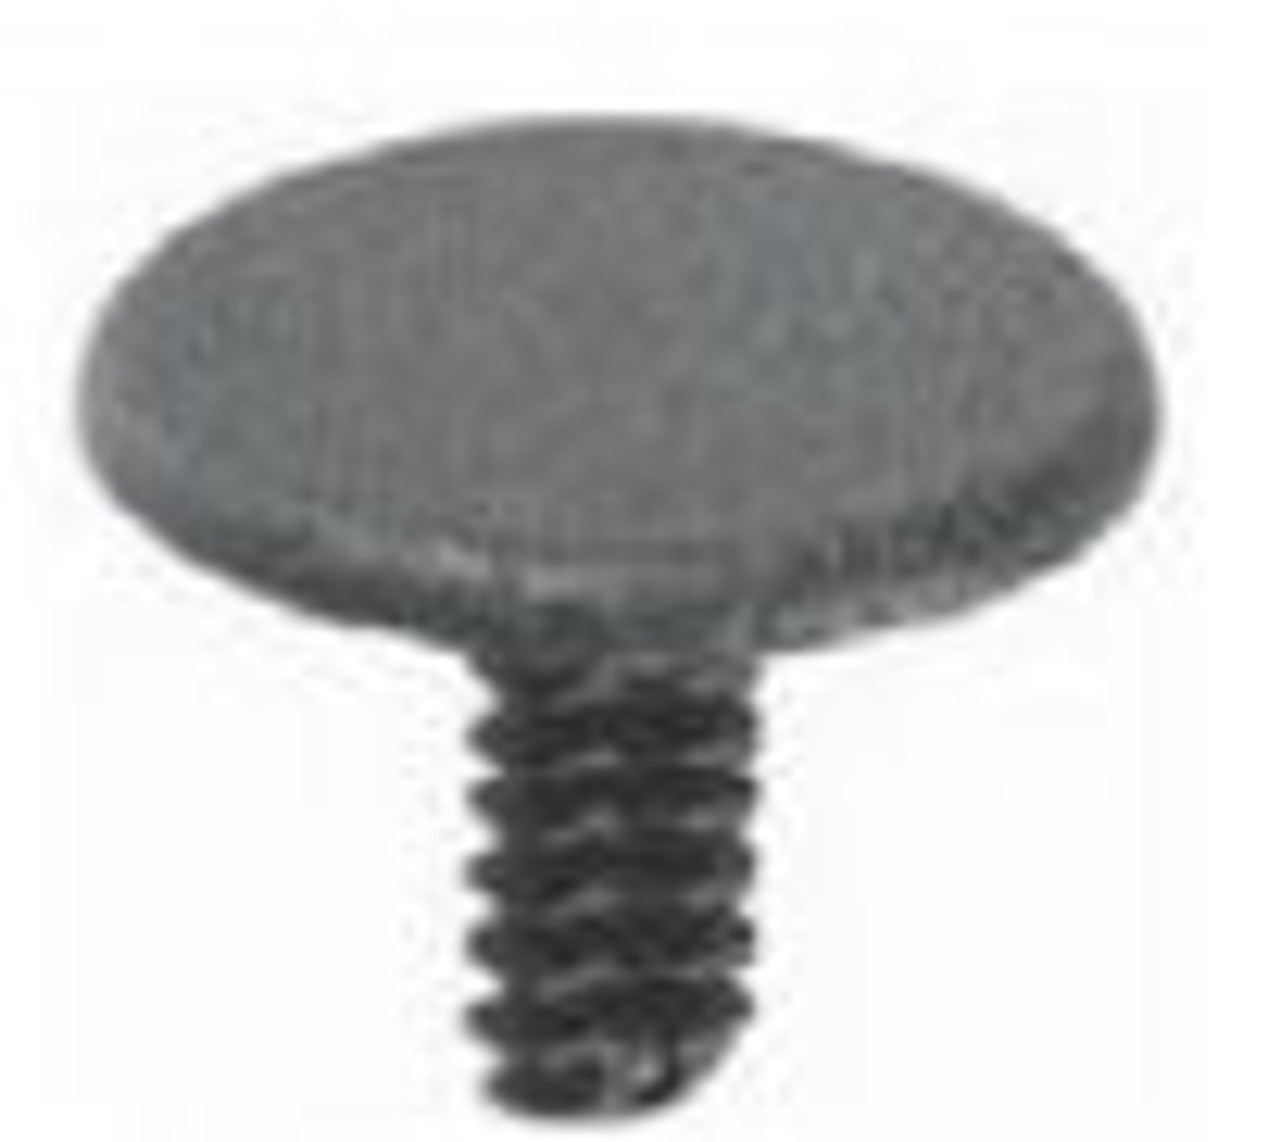 "GM Cowl Vent Retainer Head Diameter: 15/16"" OEM# 20511451 Black Nylon 25 Per box Click Next Image For Clip Detail"